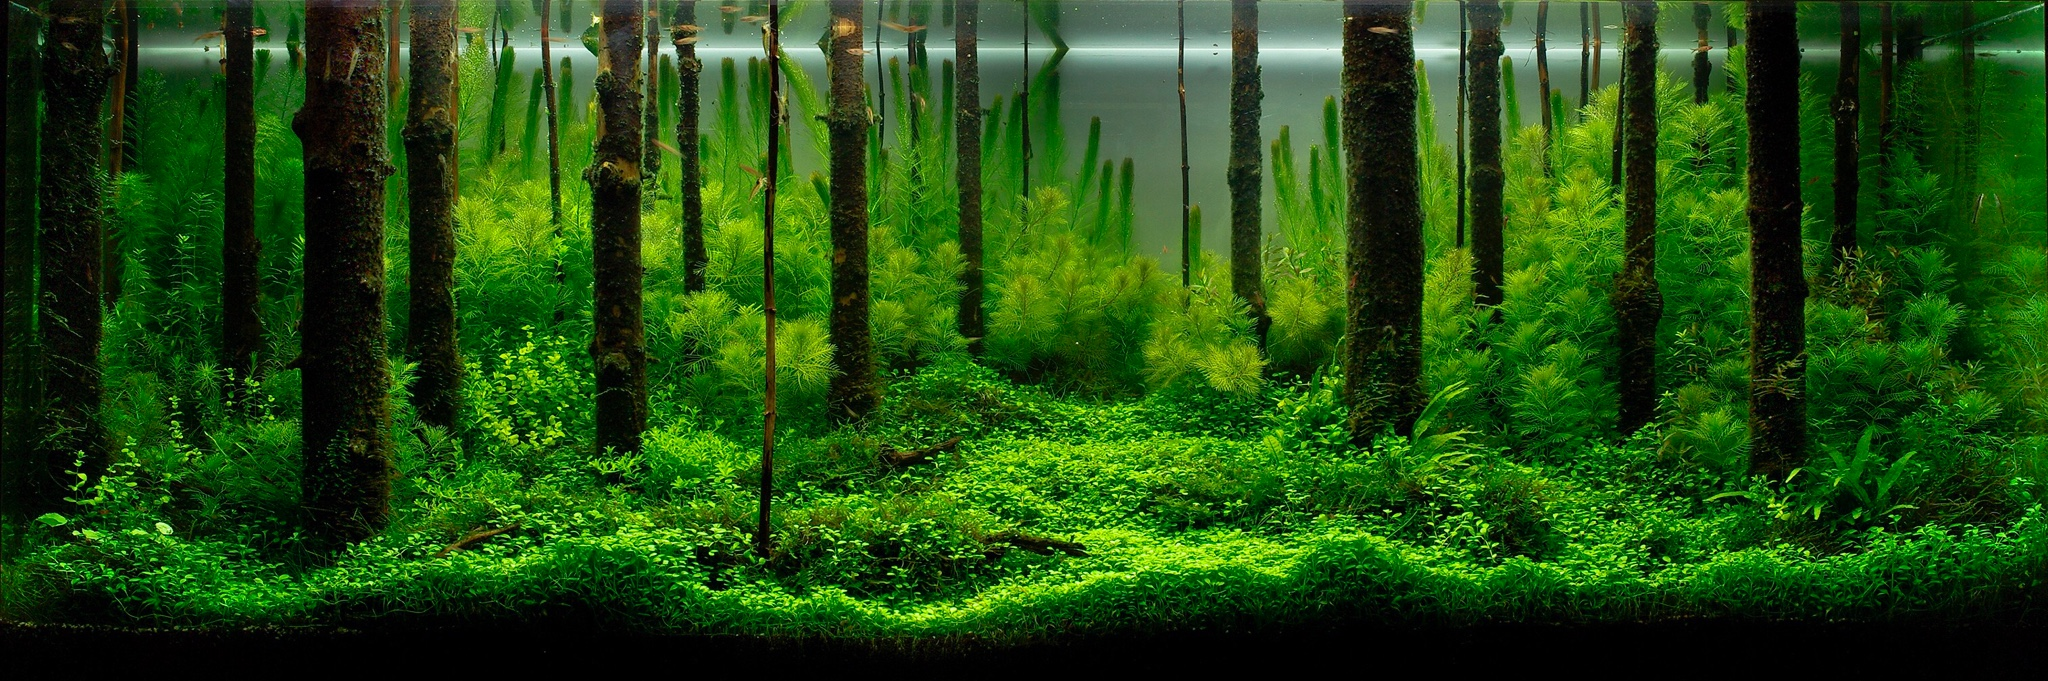 aquascaping layout wald forest einrichtung und gestaltung aquascaping forum. Black Bedroom Furniture Sets. Home Design Ideas